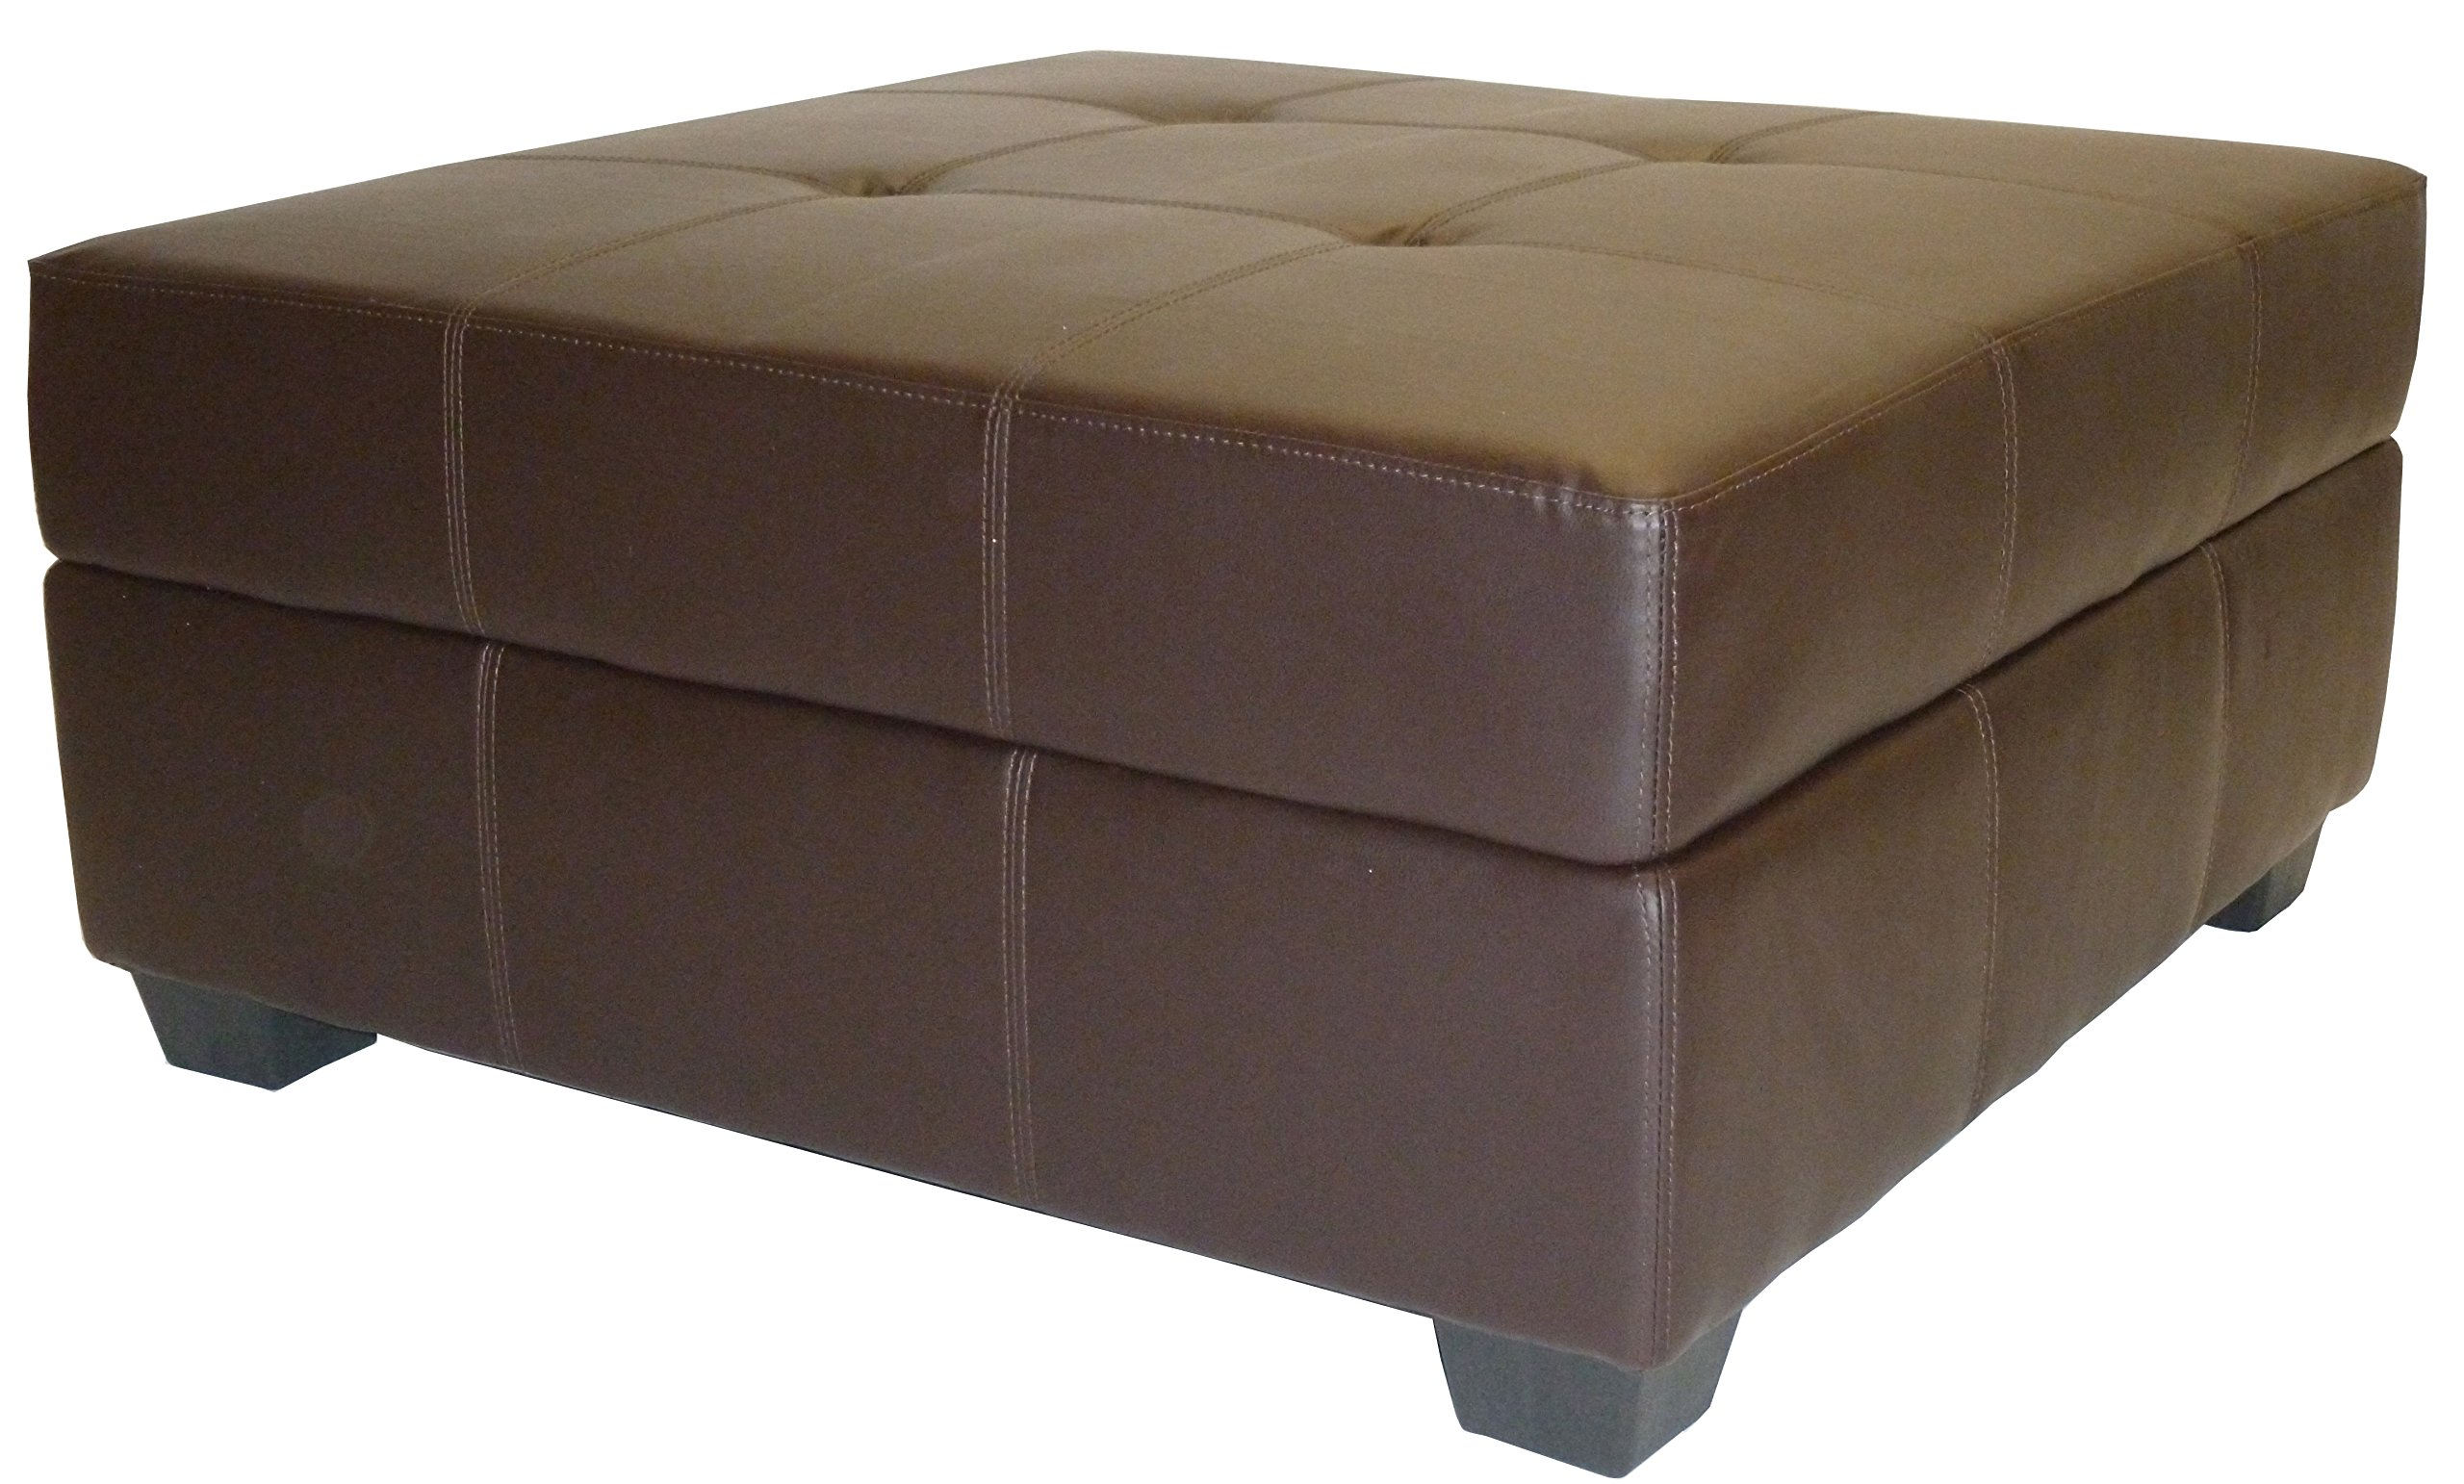 Image Result For Brown Microfiber Storage Ottoman With Tray